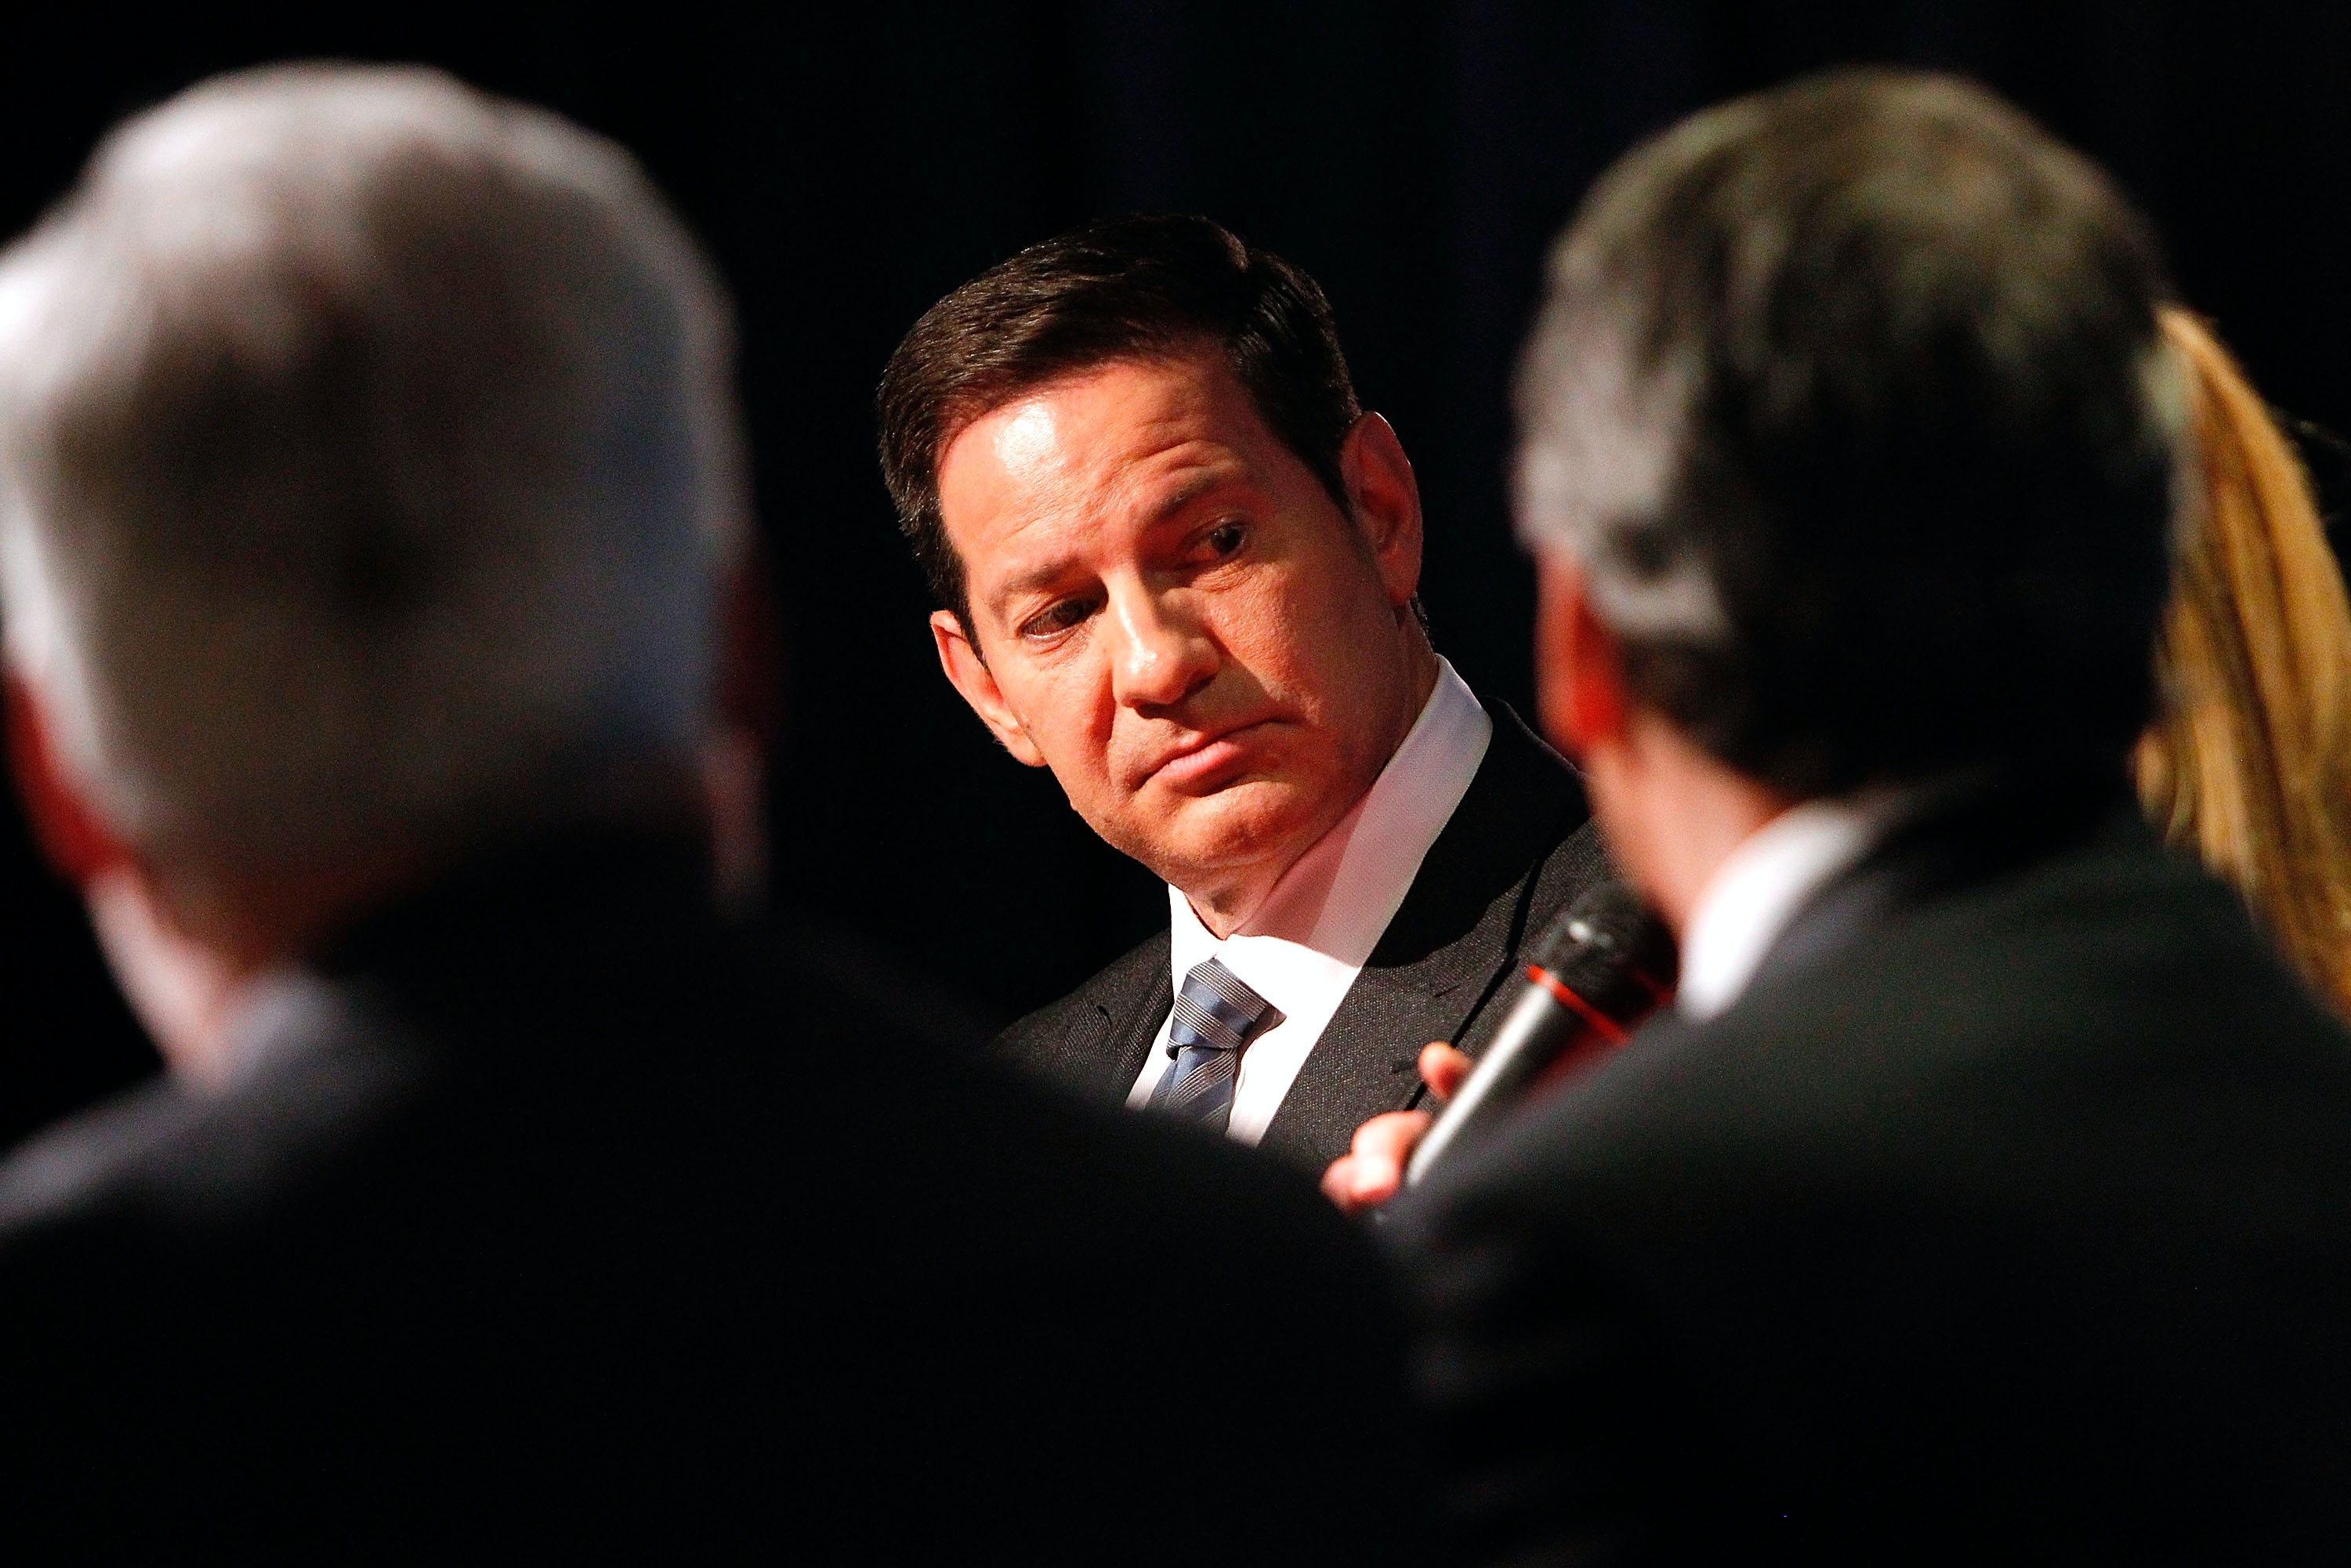 'Game Change' Co-Author Mark Halperin Accused of Sexual Harassment by 5 Women